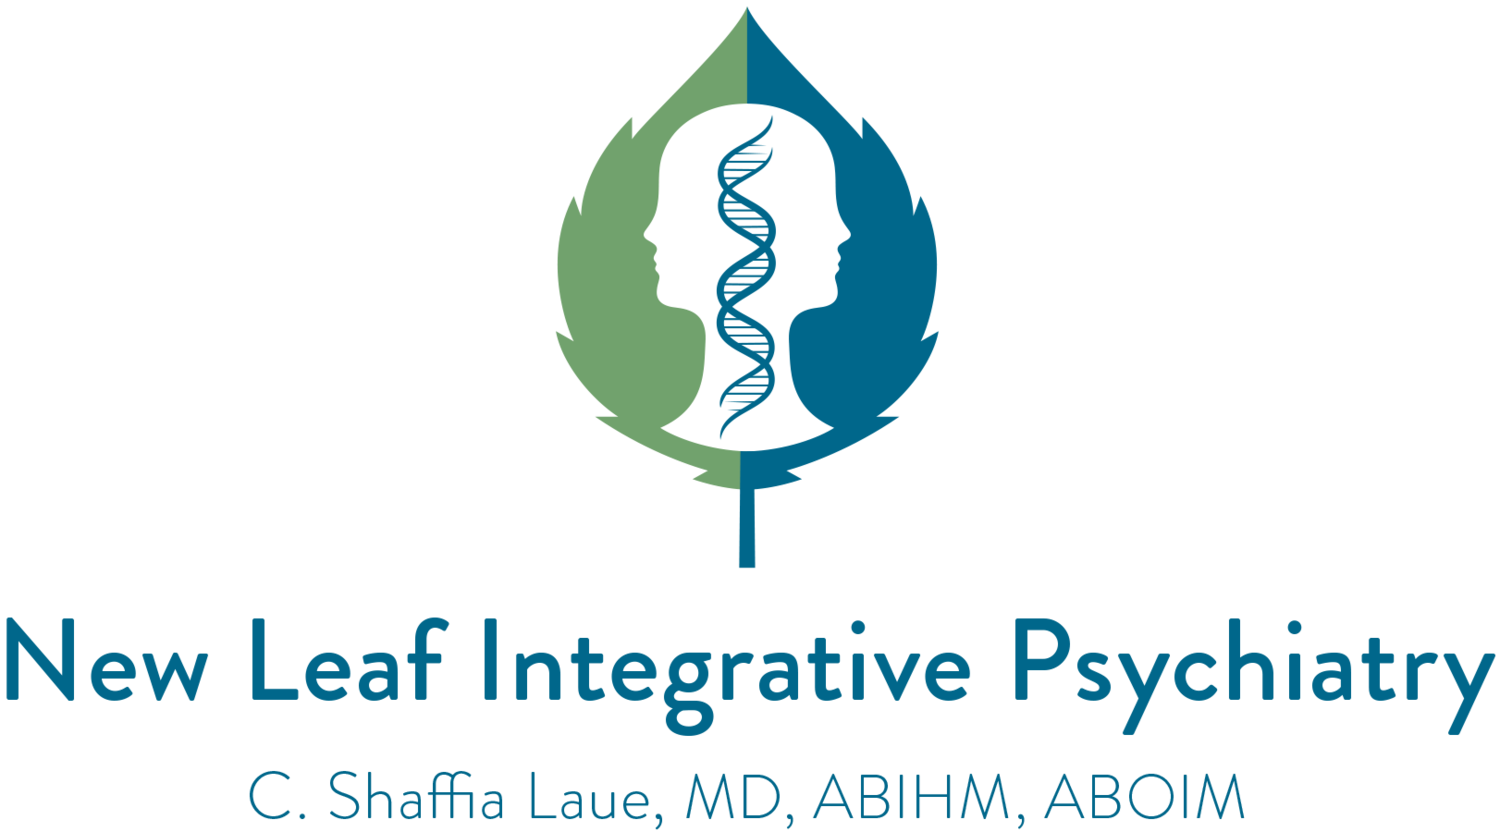 New Leaf Integrative Psychiatry – Dr. C. Shaffia Laue